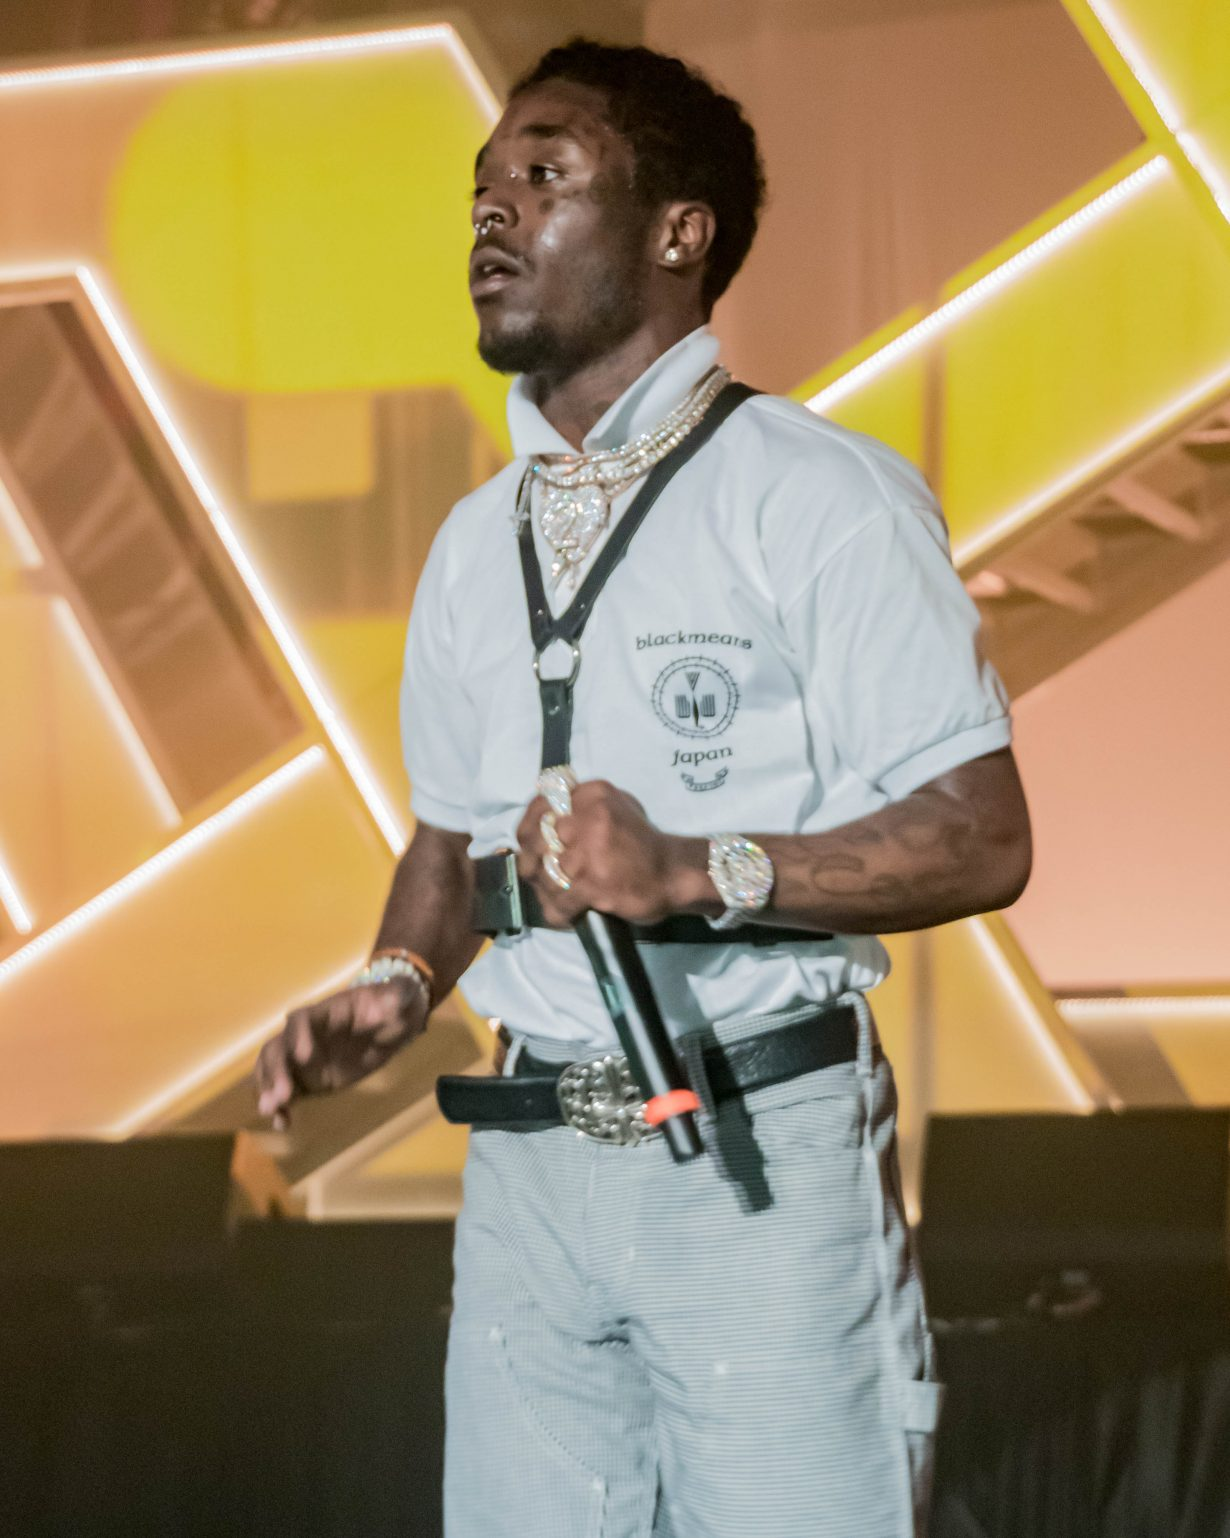 Lil Uzi Vert. RapCaviar Aragon Ballroom 2017 Chicago Il. Photo by Kevin Baker 4 1230x1538 RapCaviar Sets Chicago On Fire with Lil Uzi Vert, Playboi Carti, Cardi B, DJ Drama and More